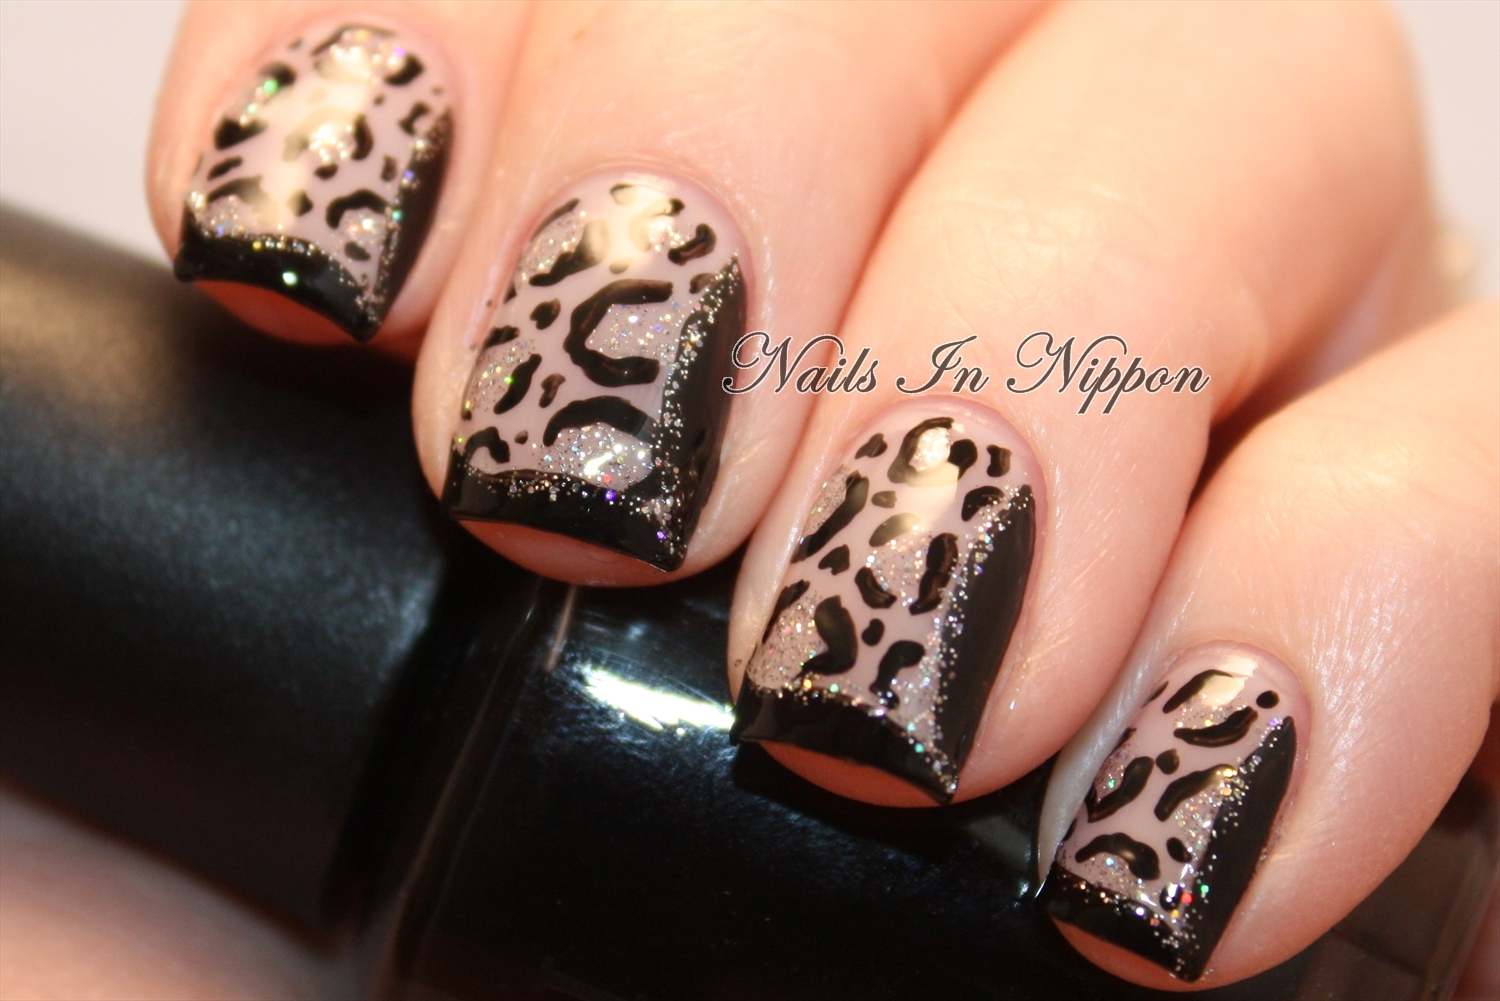 Nails In Nippon: September 2012